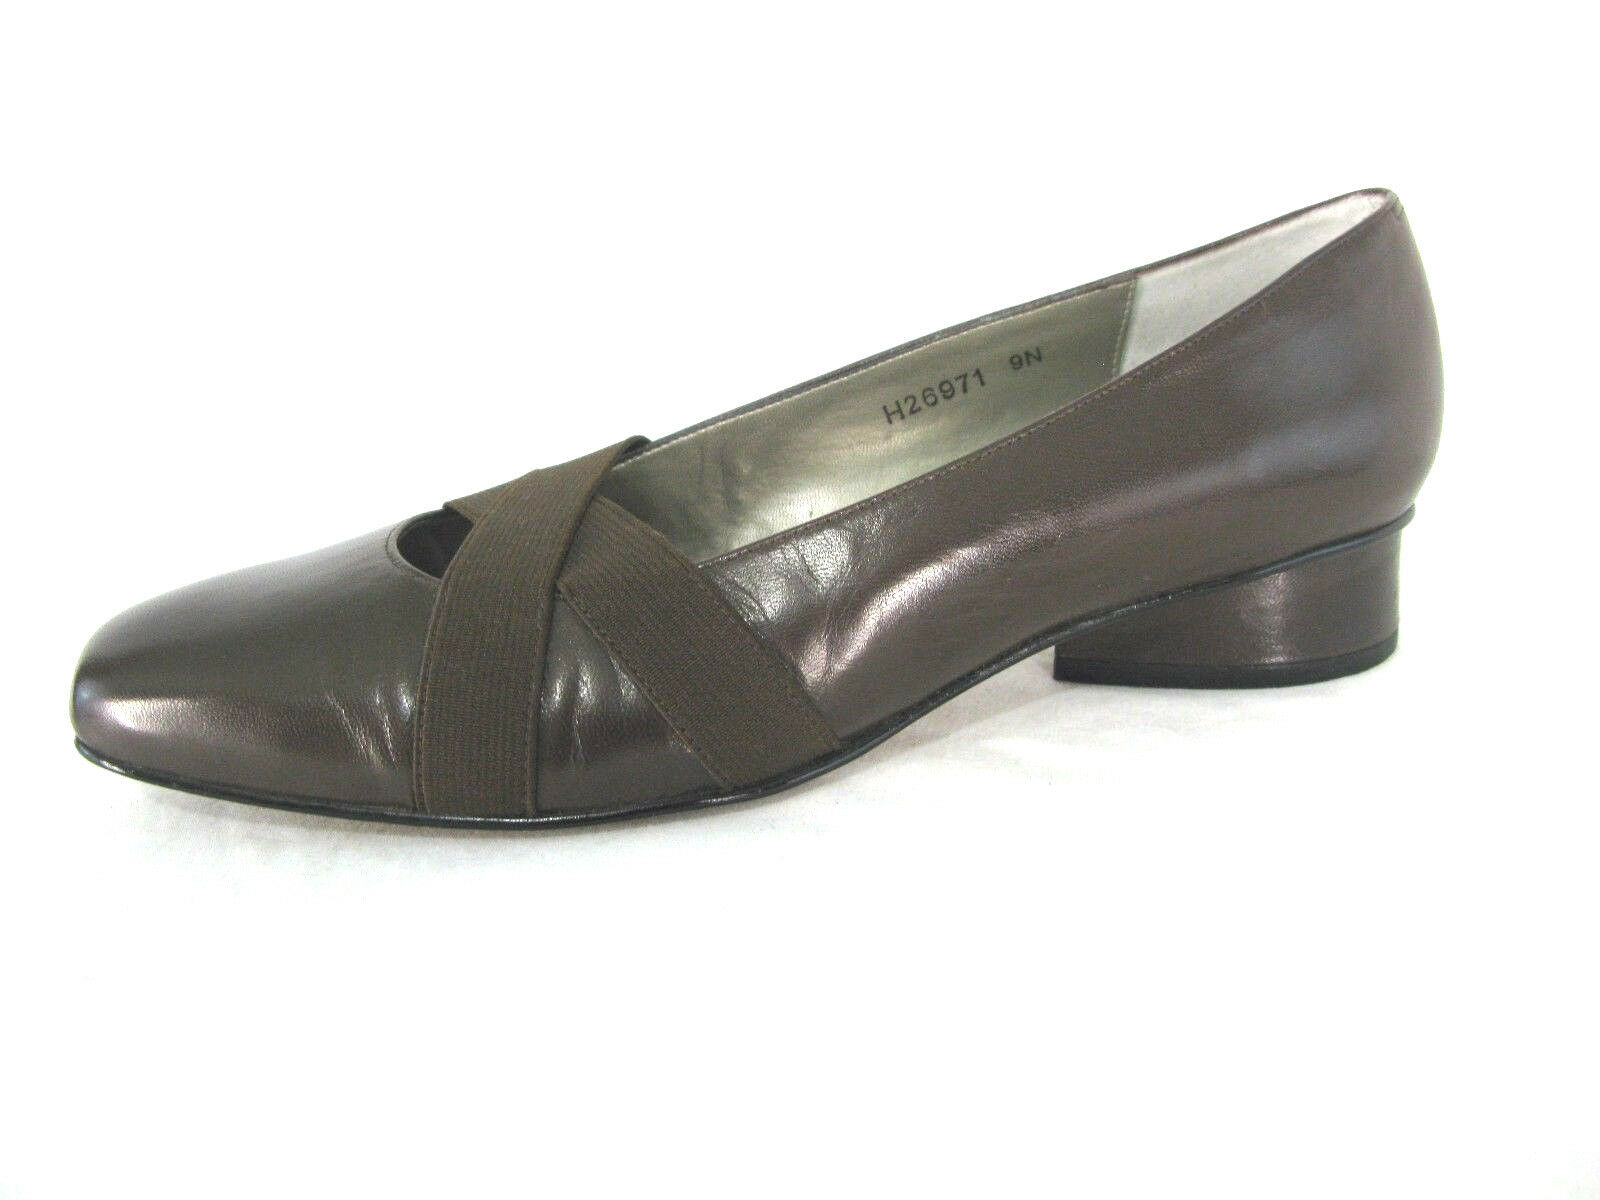 Ros Hommerson shoes Sz 9N Brown Leather Pumps Low Heel Loafers Mary Jane 9 N